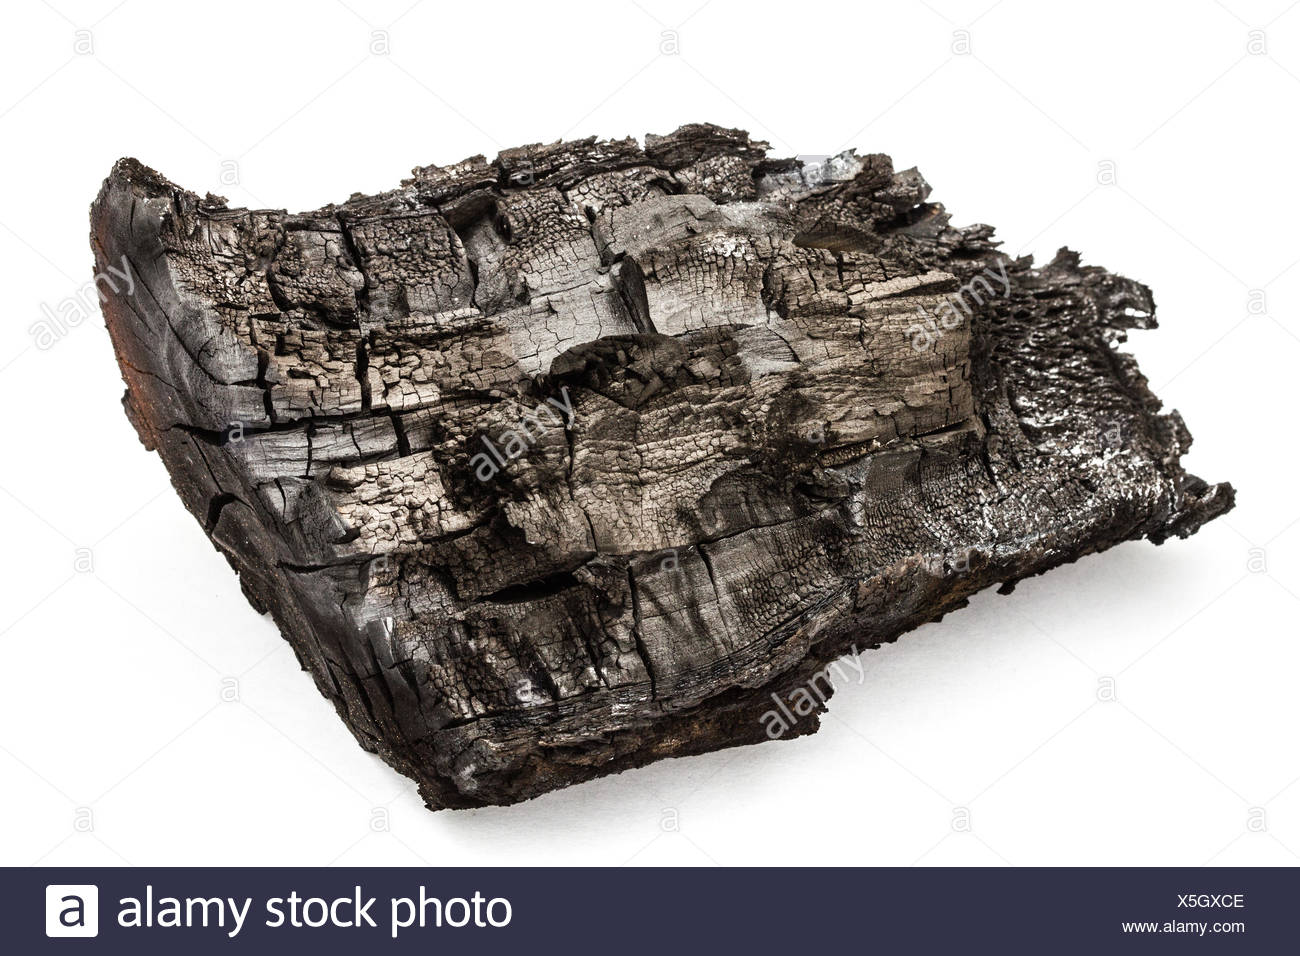 Charred bunt, isolated on a white background - Stock Image